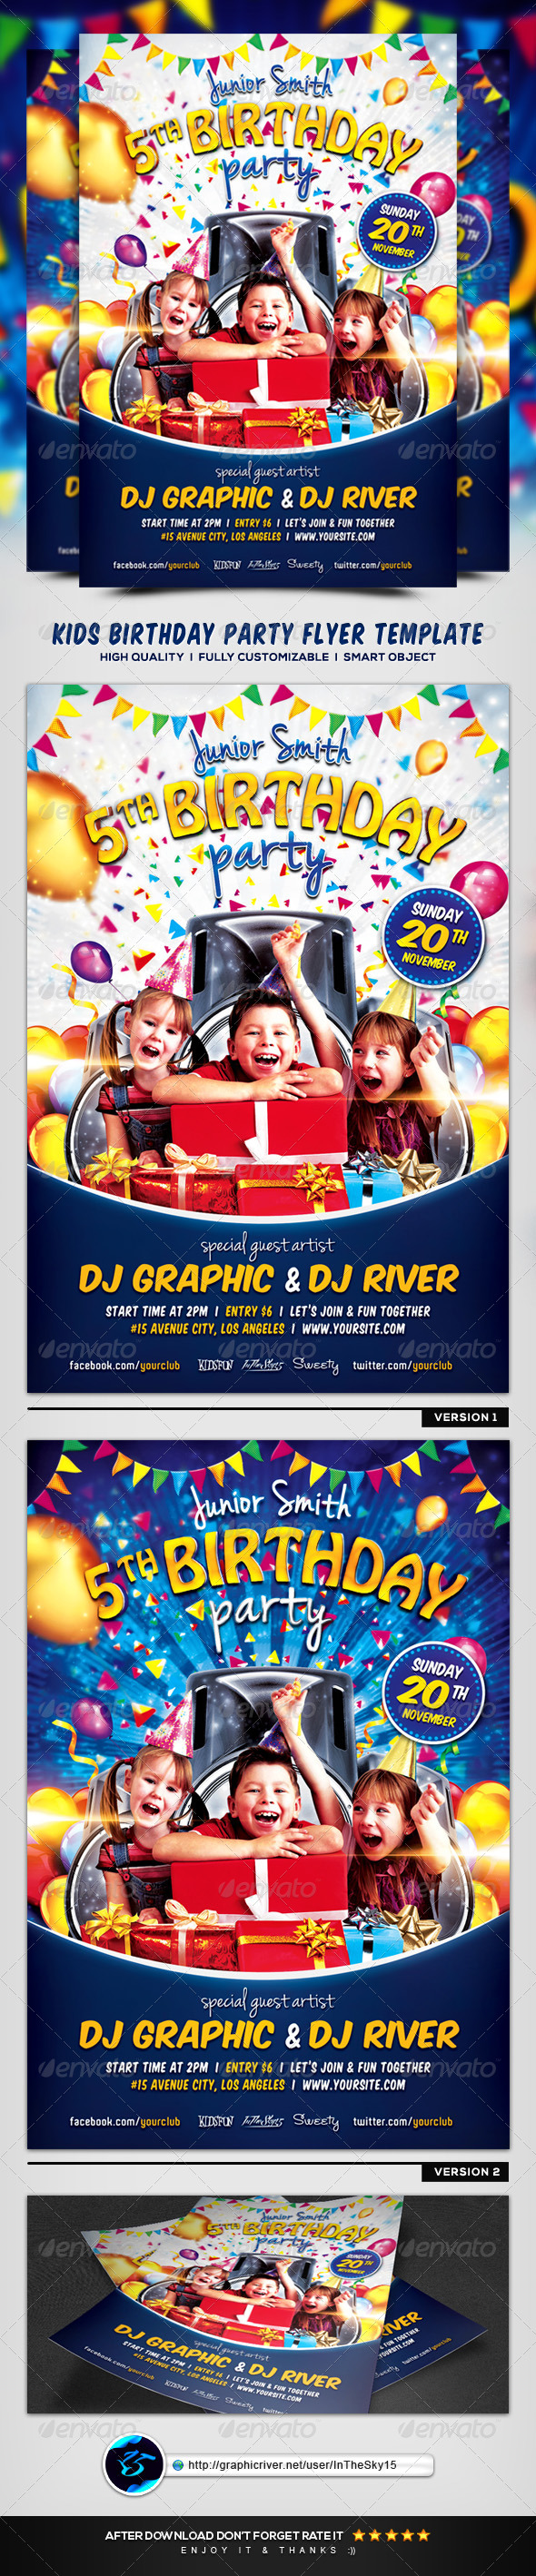 GraphicRiver Kids Birthday Party Flyer Template 8430324